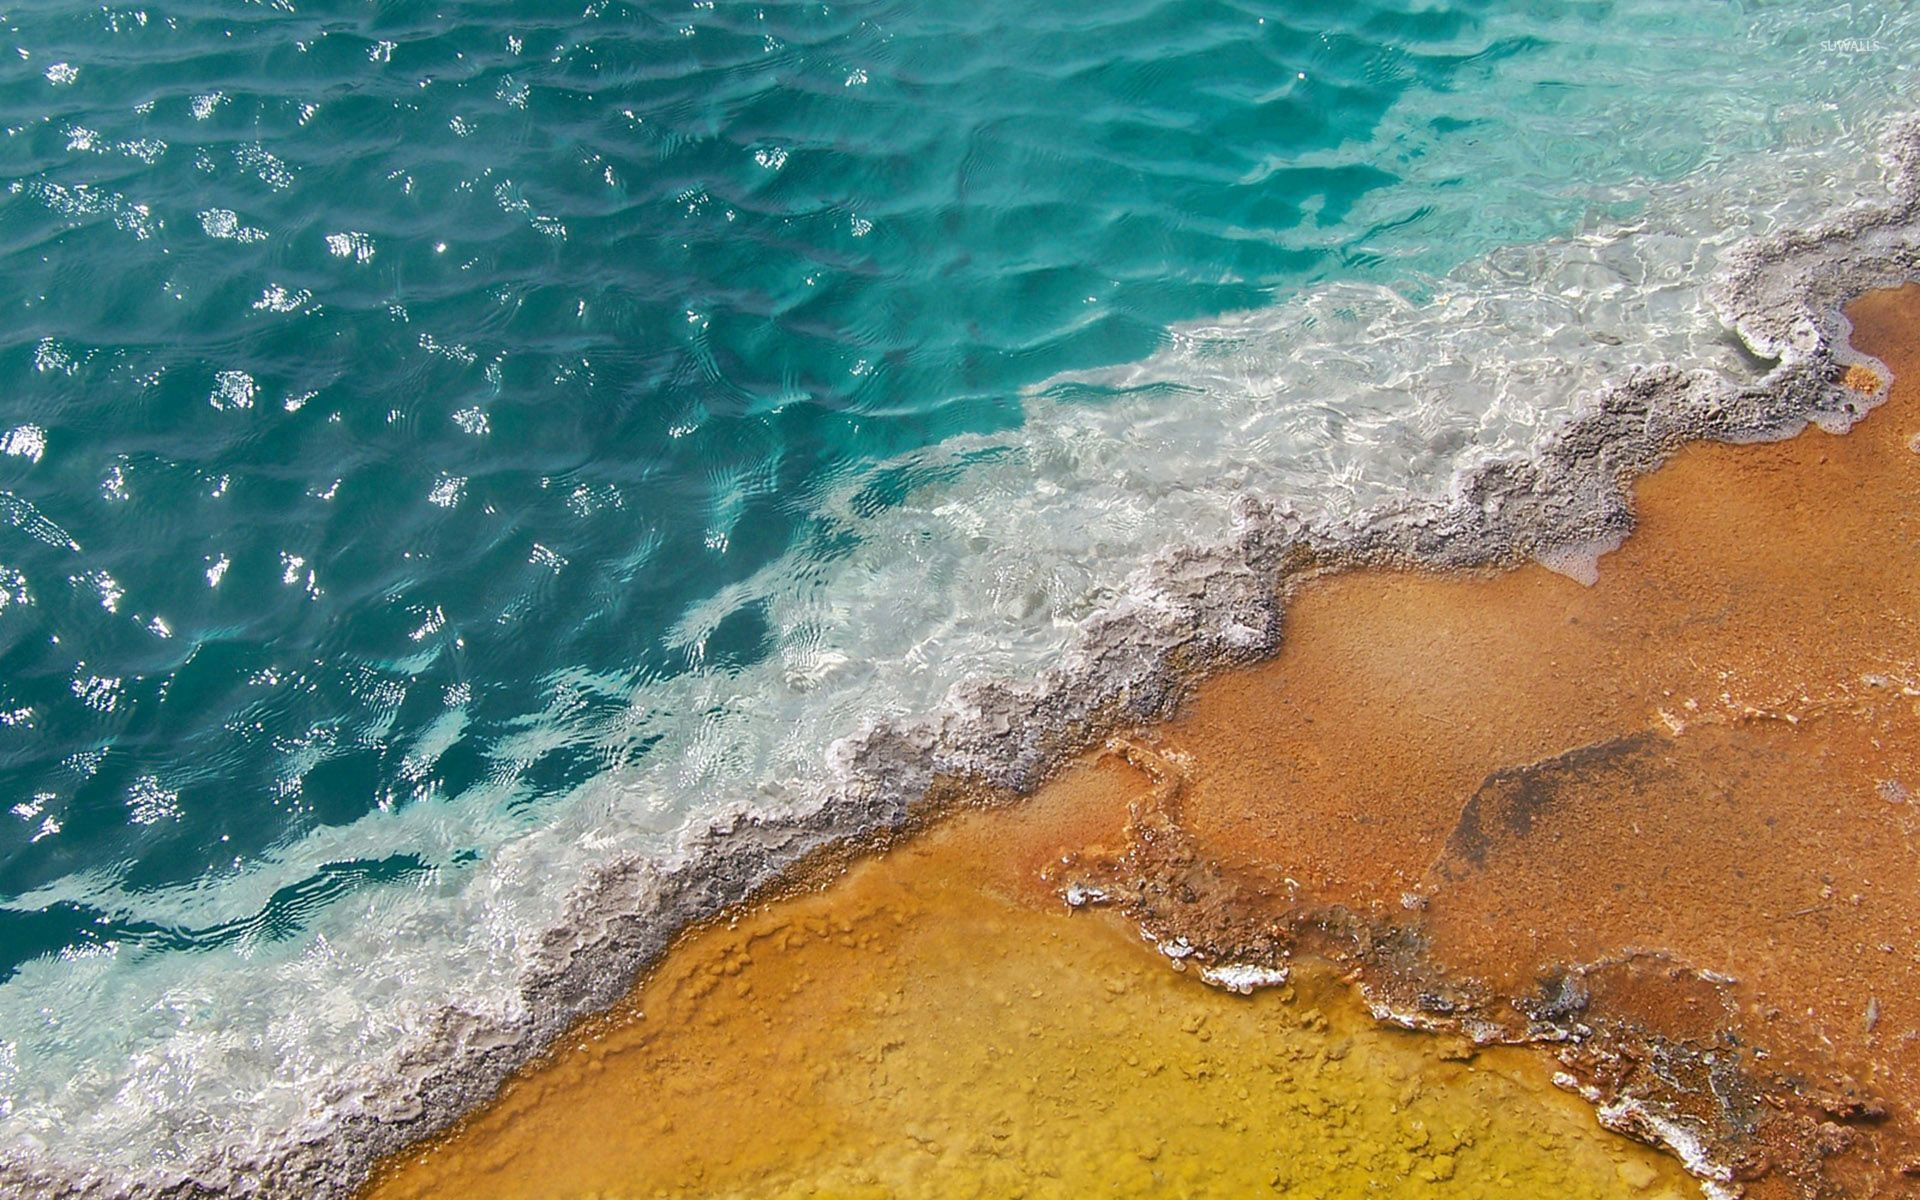 Colorful sand in the blue ocean wallpaper - Beach ...